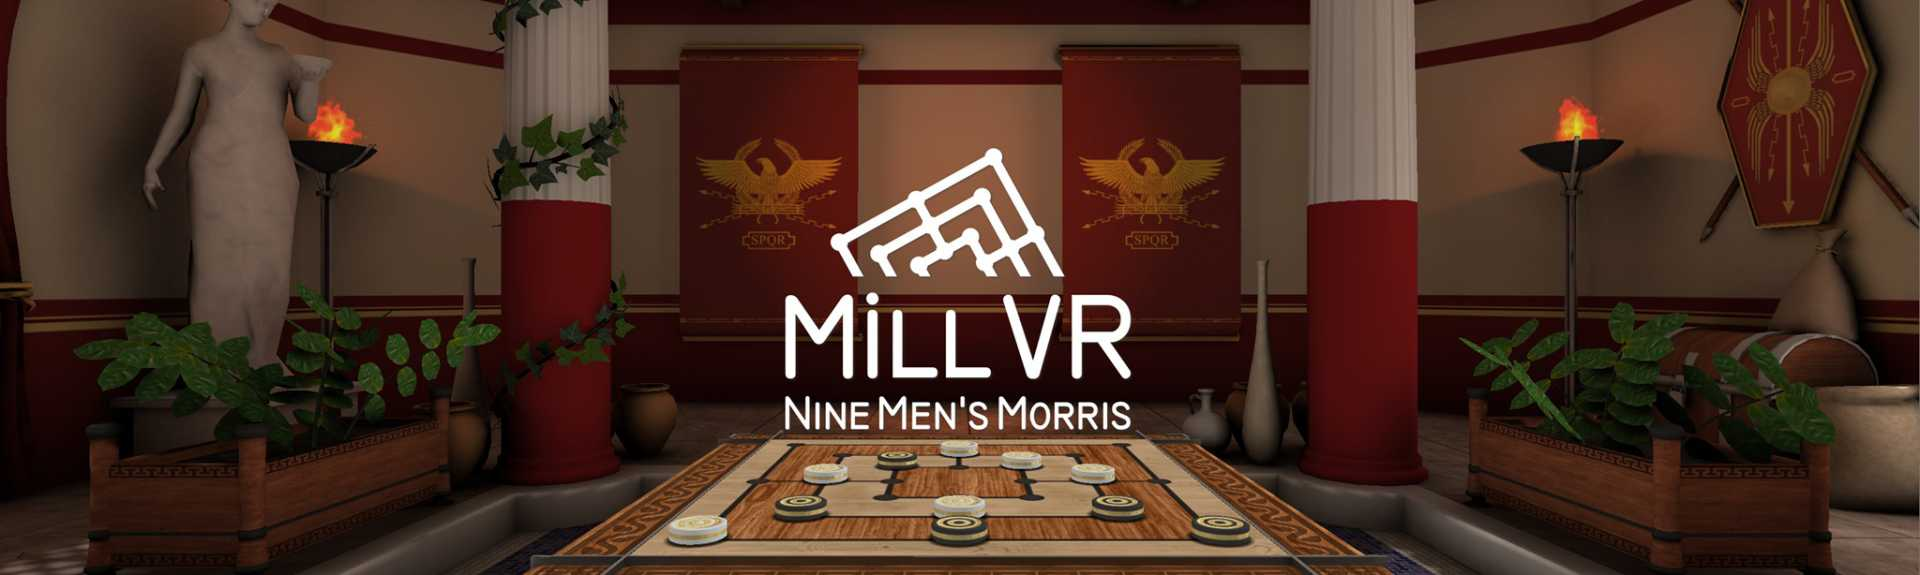 Mill VR: Nine Men's Morris